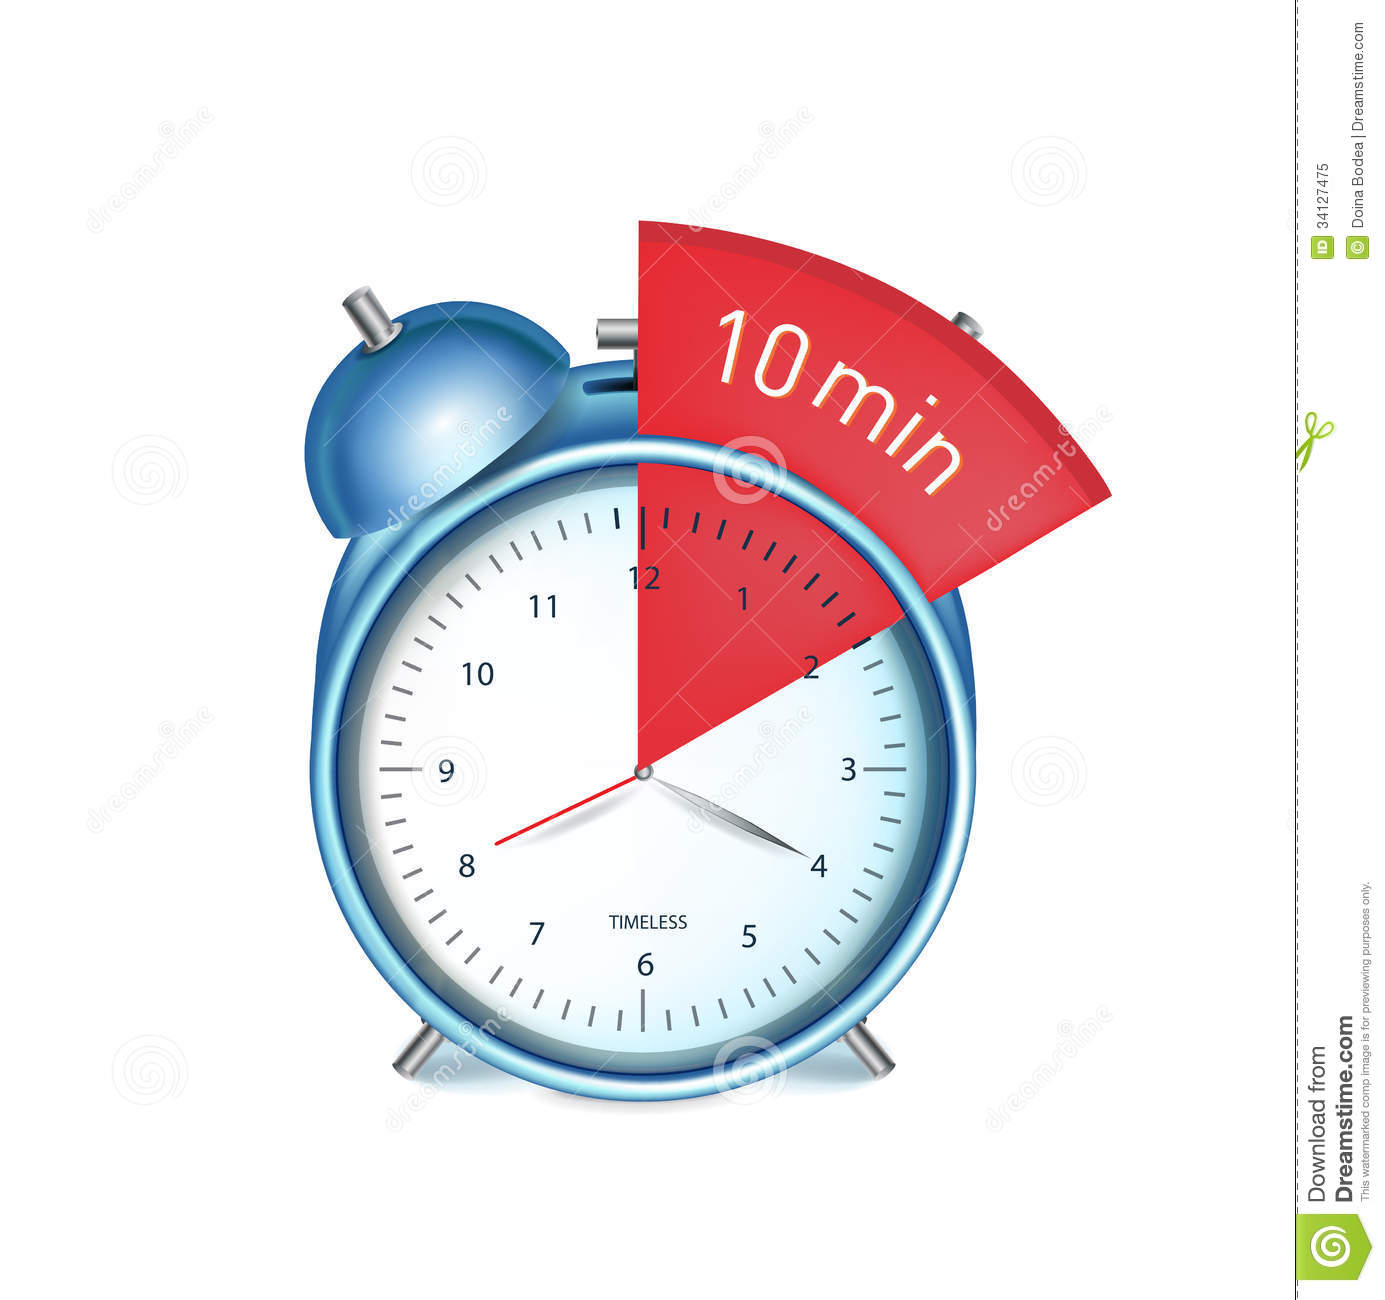 Desk Alarm Clock With Ten Minutes Sign Royalty Free Stock Photo ...